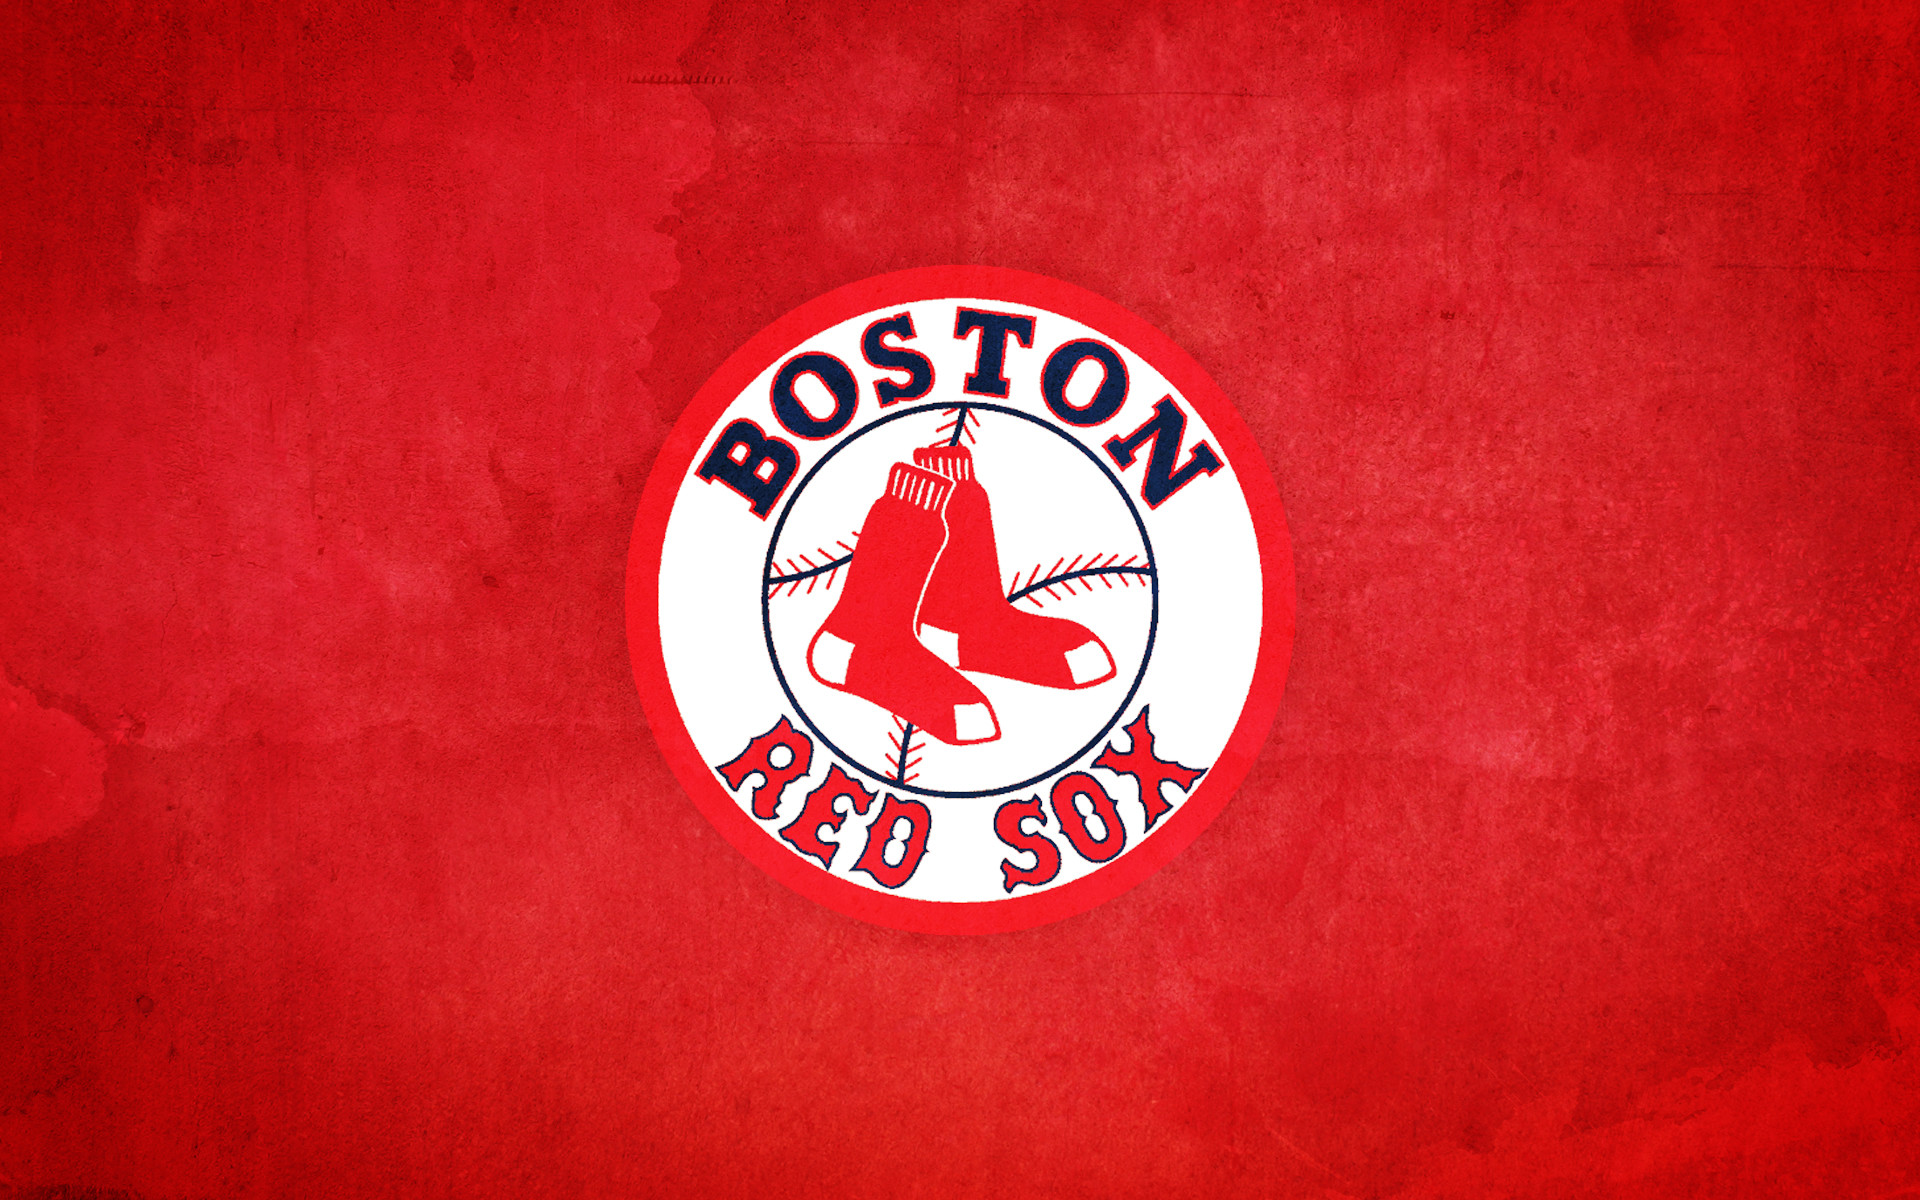 1920x1200 Boston Red Sox Logo Wallpapers - Wallpaper Zone